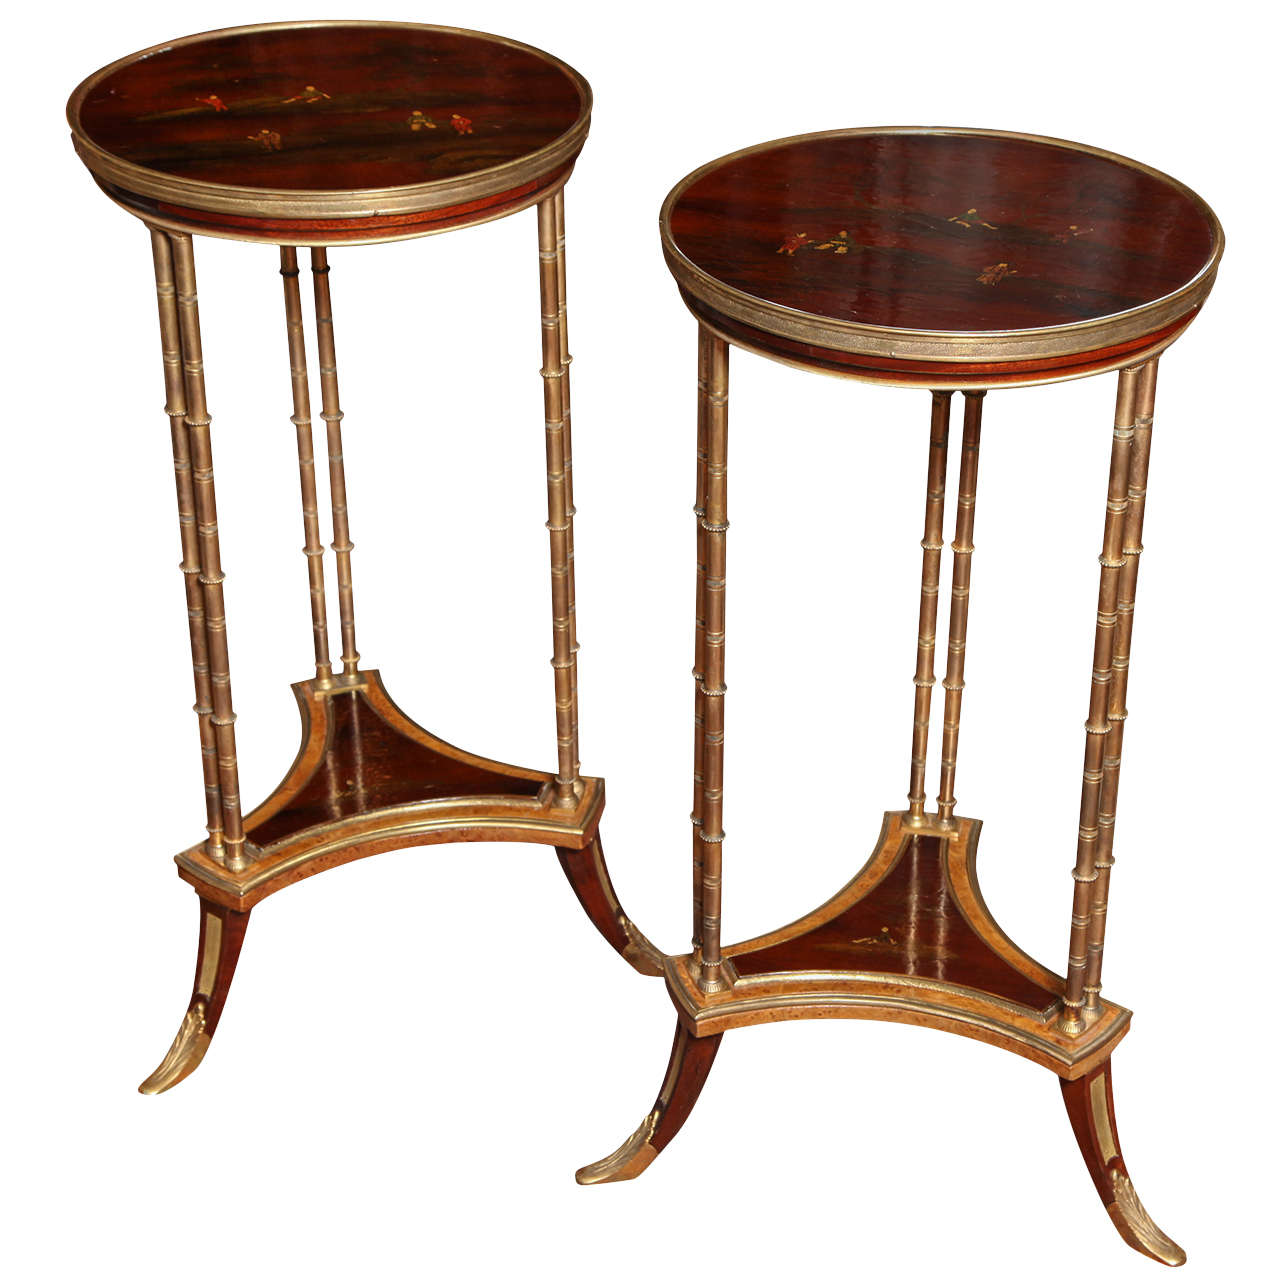 Pair of French Bronze and Lacquer Gueridon Tables 1